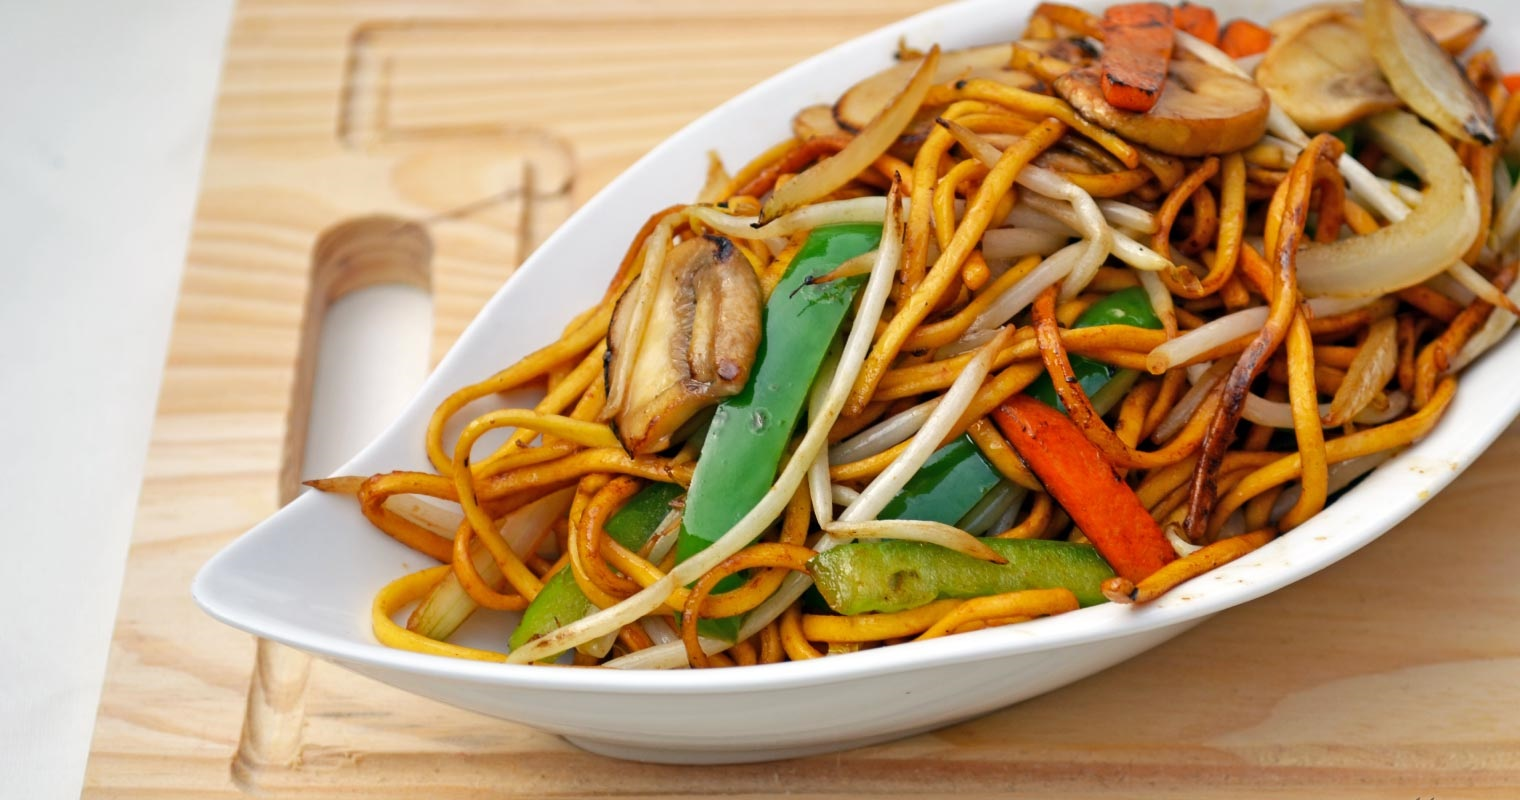 Dhoomley Chowmein Noodles Image